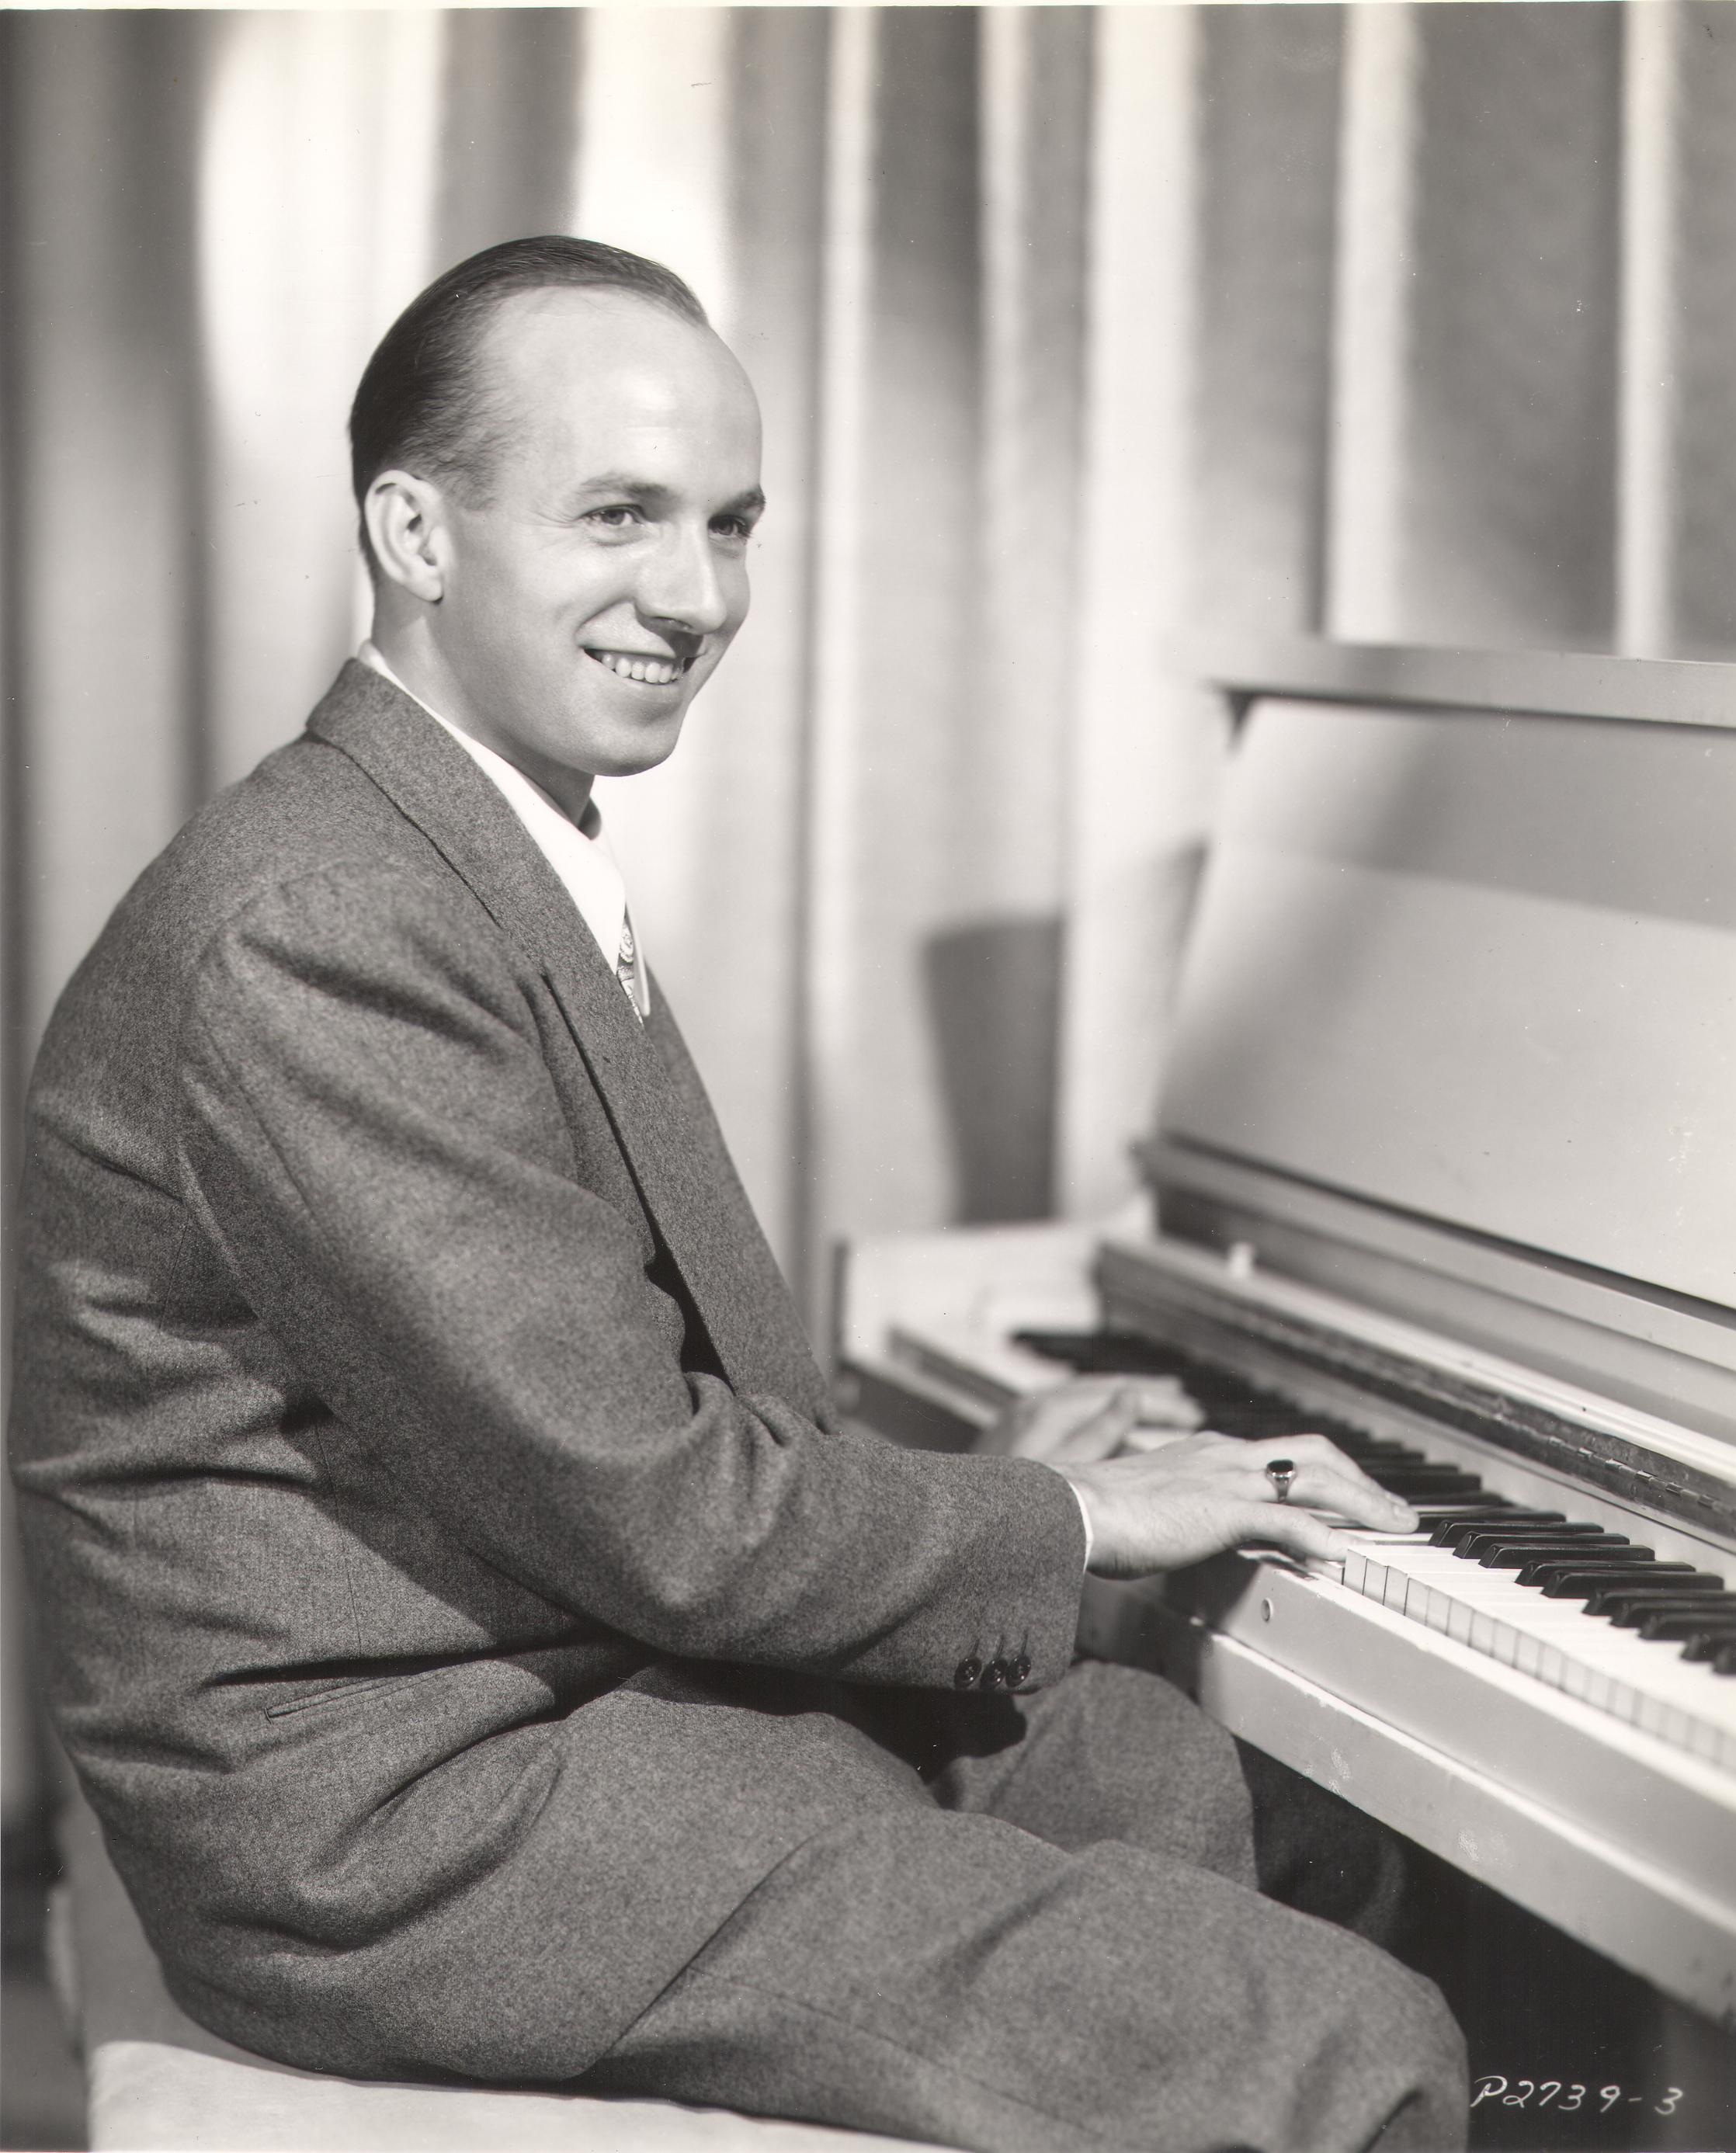 Jimmy Van Heusen playing the piano